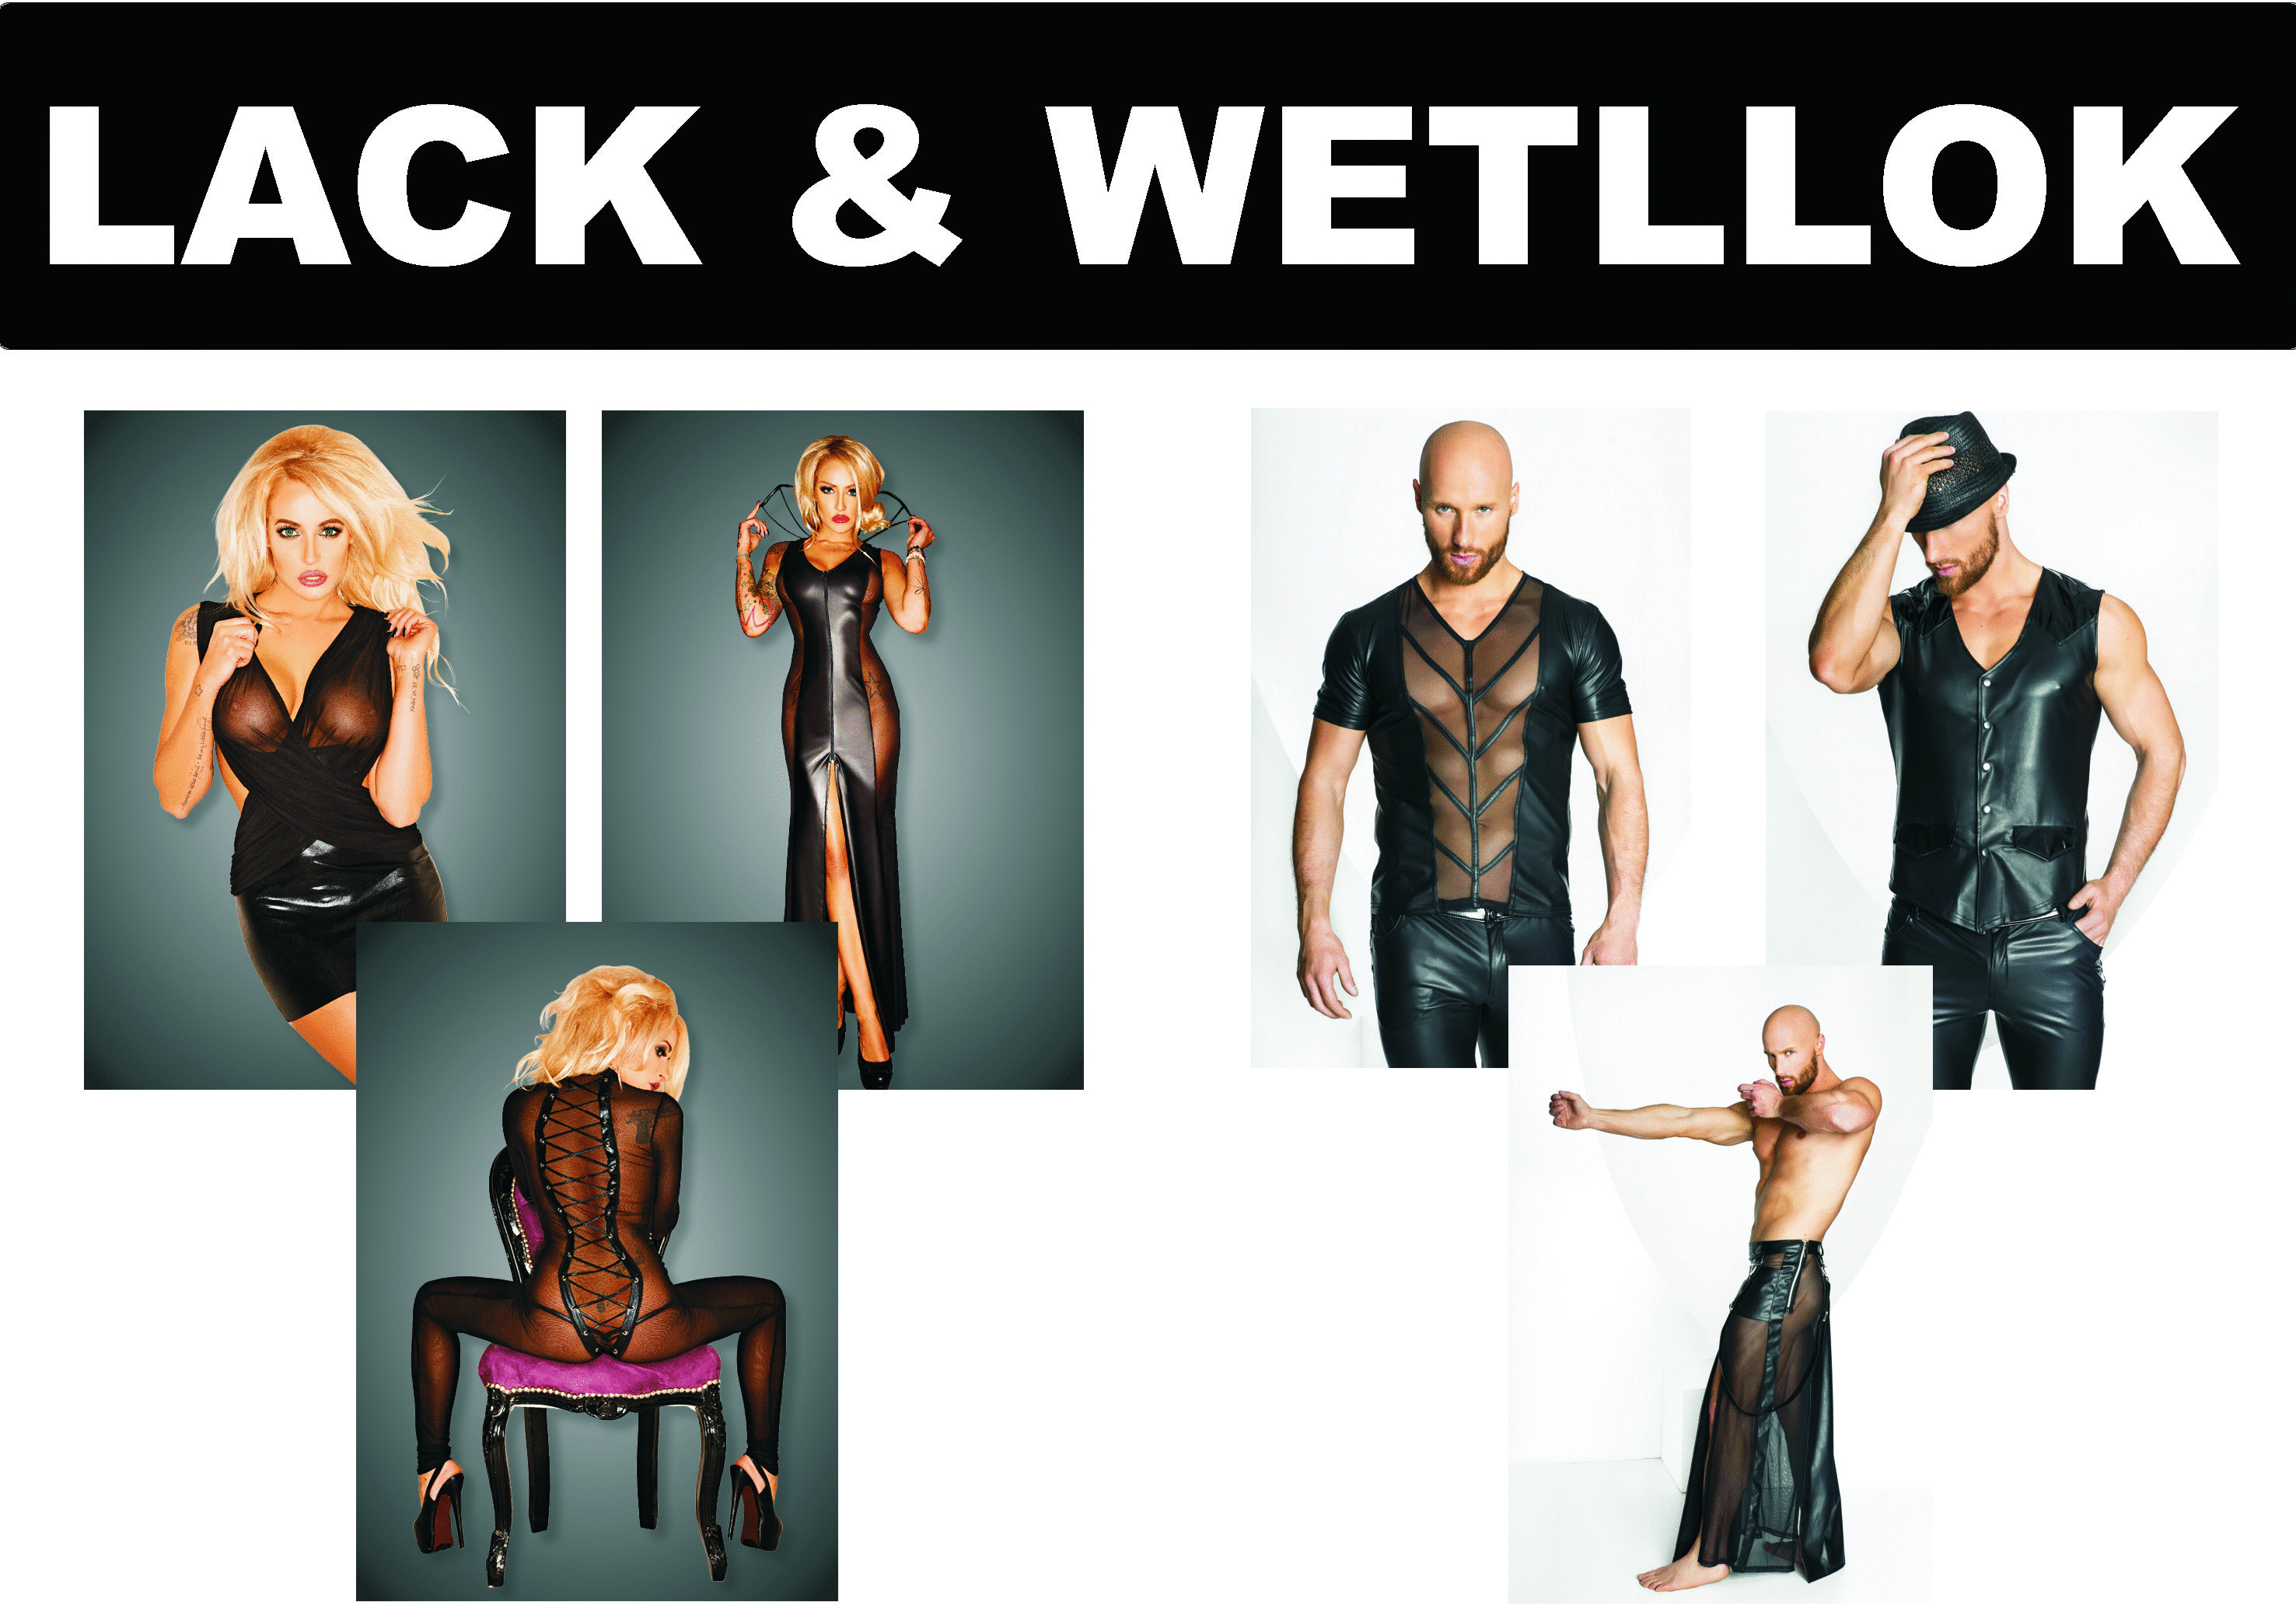 Lack__Wetlook